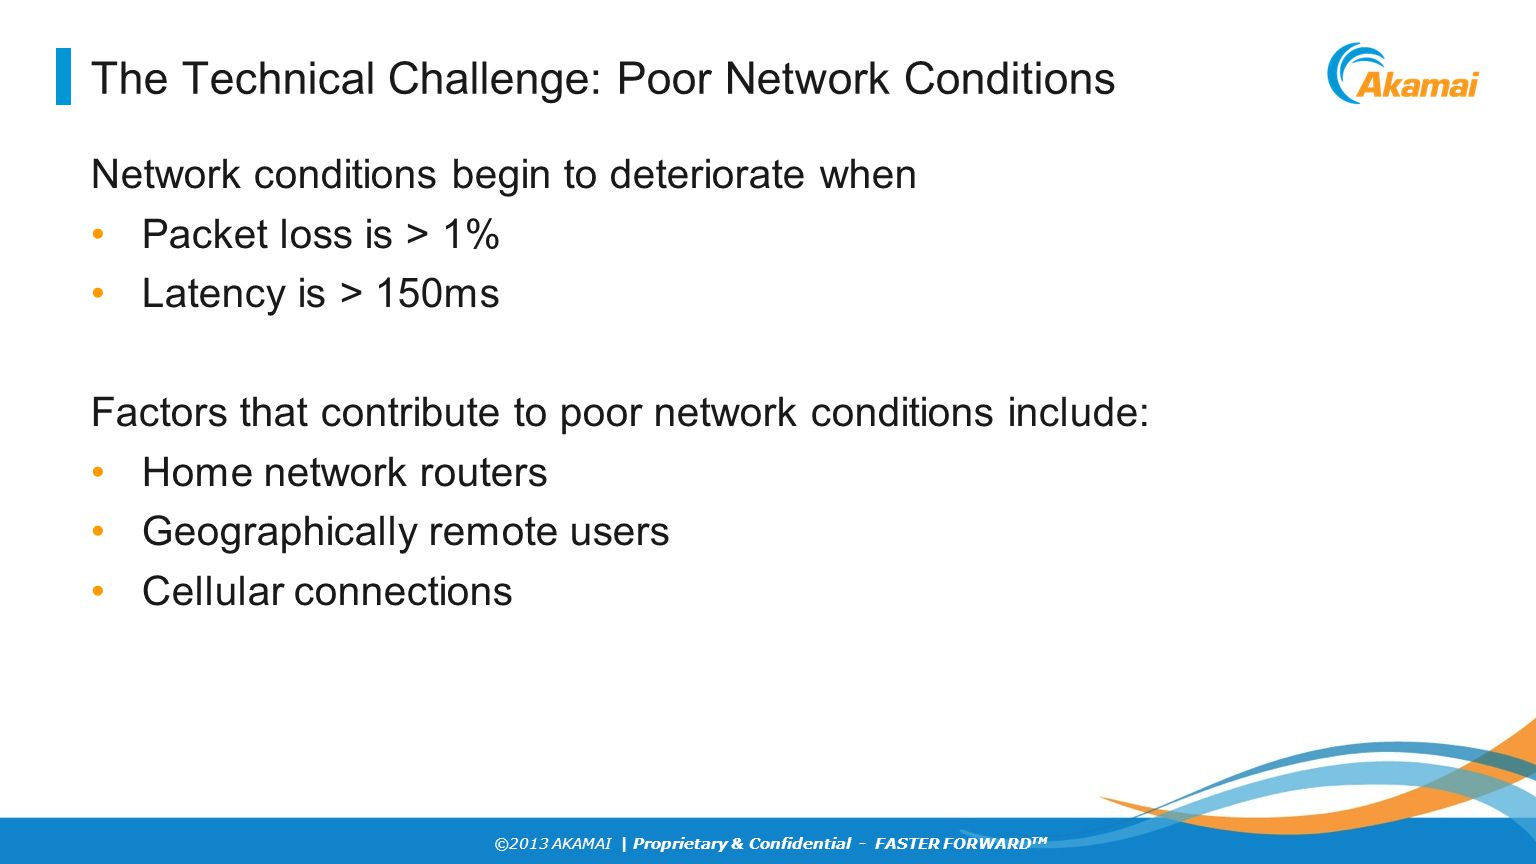 The Technical Challenge: Poor Network Conditions